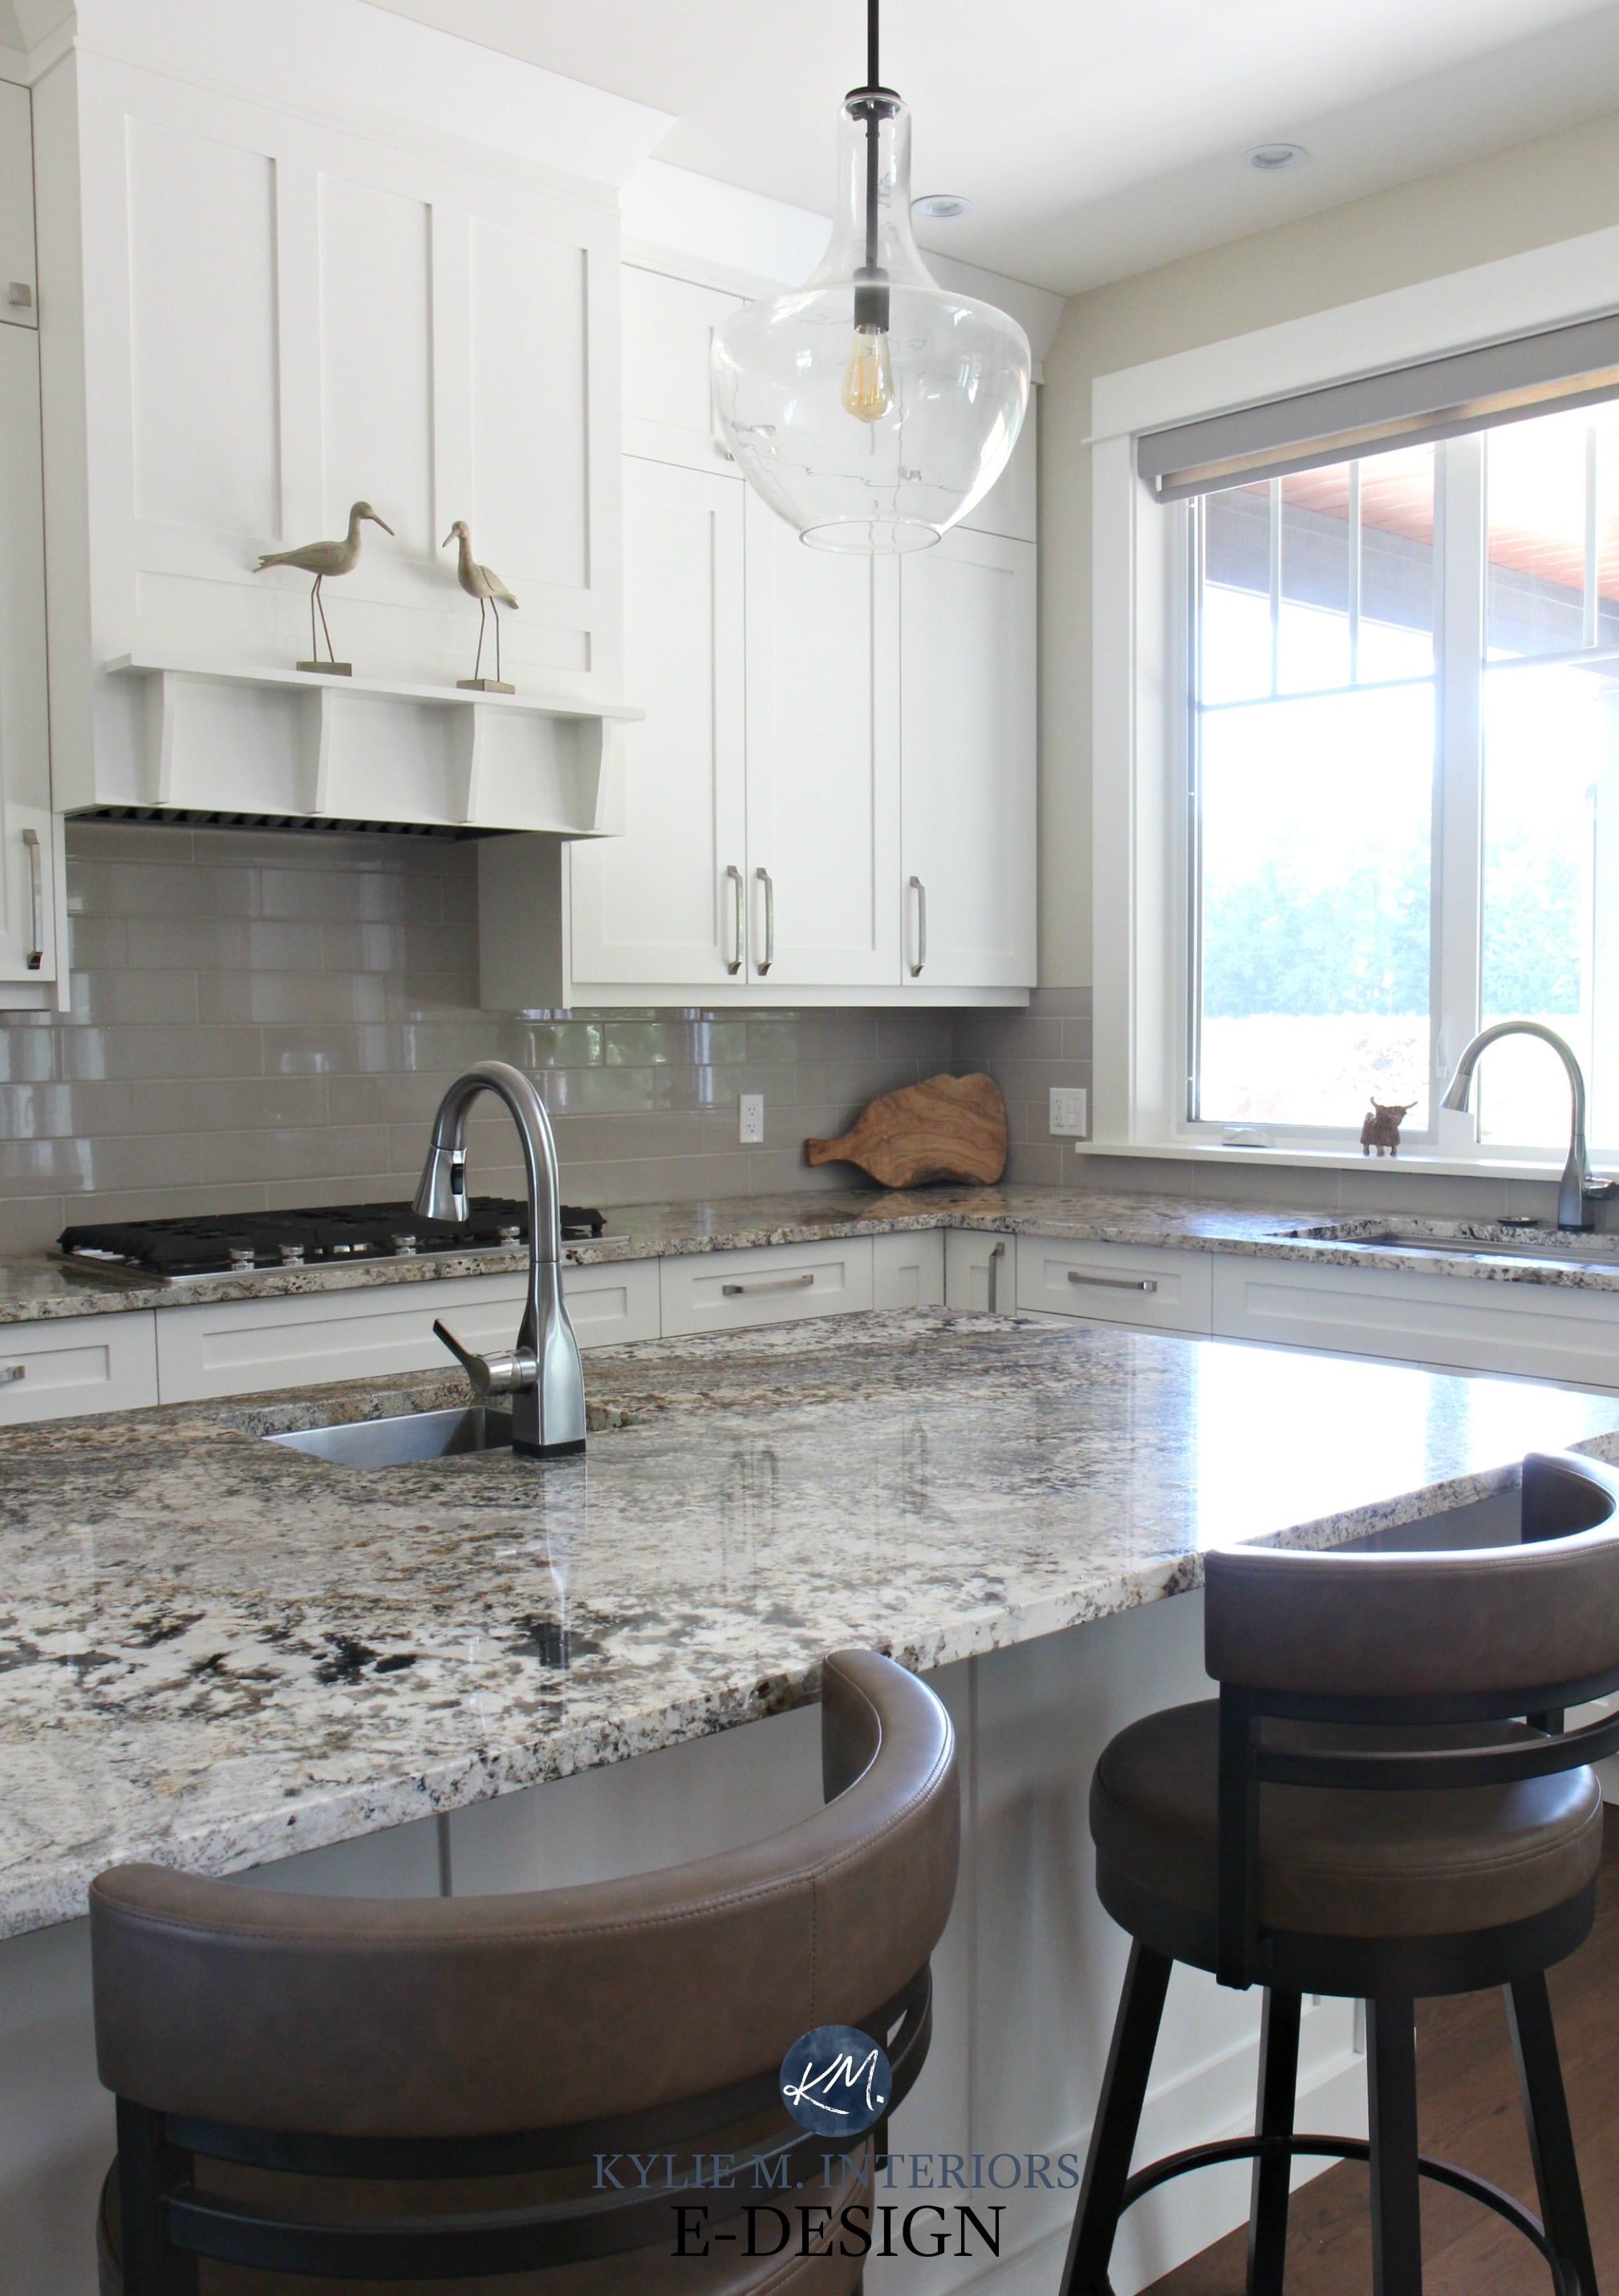 Kylie M Interiors Edesign Cloud White Kitchen Cabinets Granite